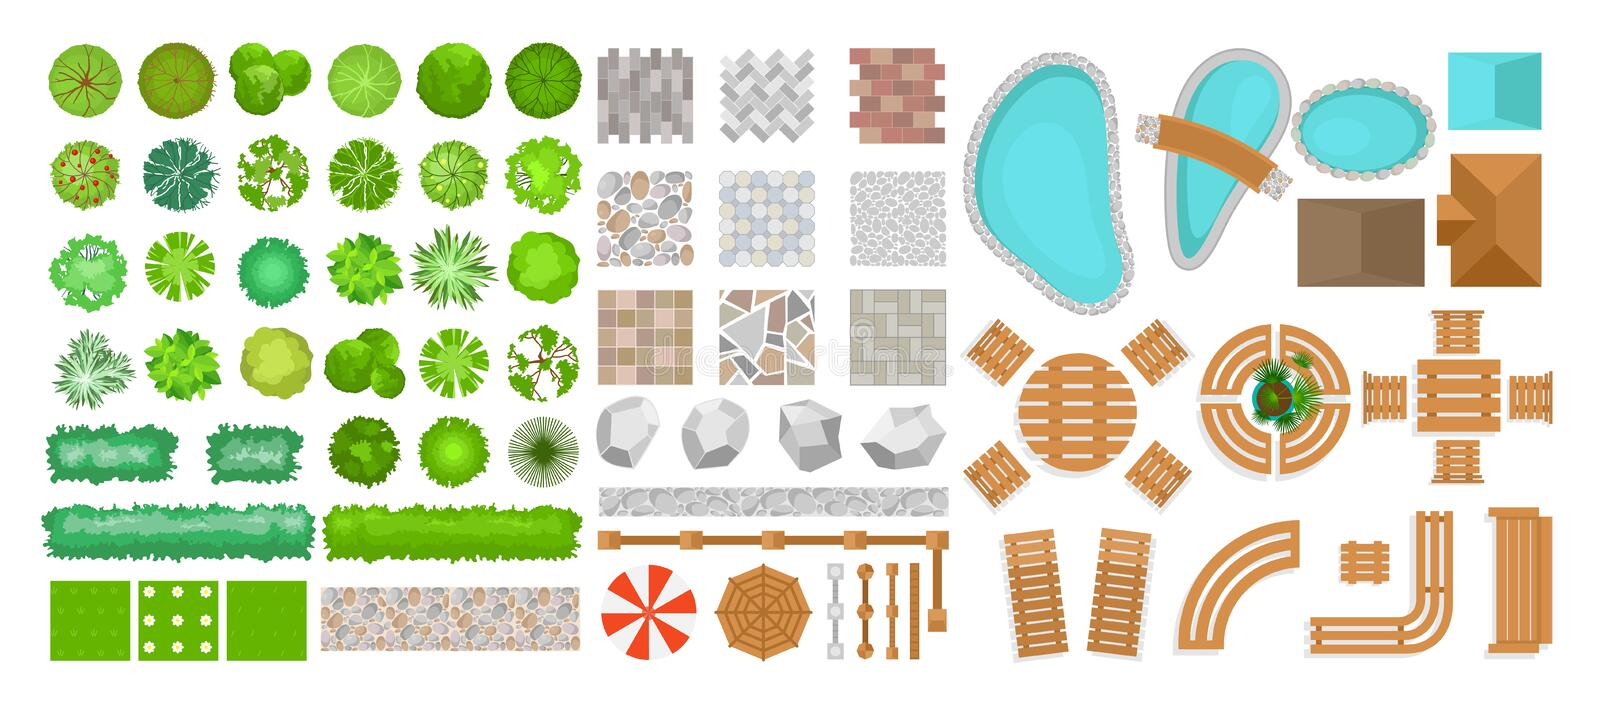 Vector illustration set of park elements for landscape design. Top view of trees, outdoor furniture, plants and. Architectural elements, fences, sun loungers stock illustration